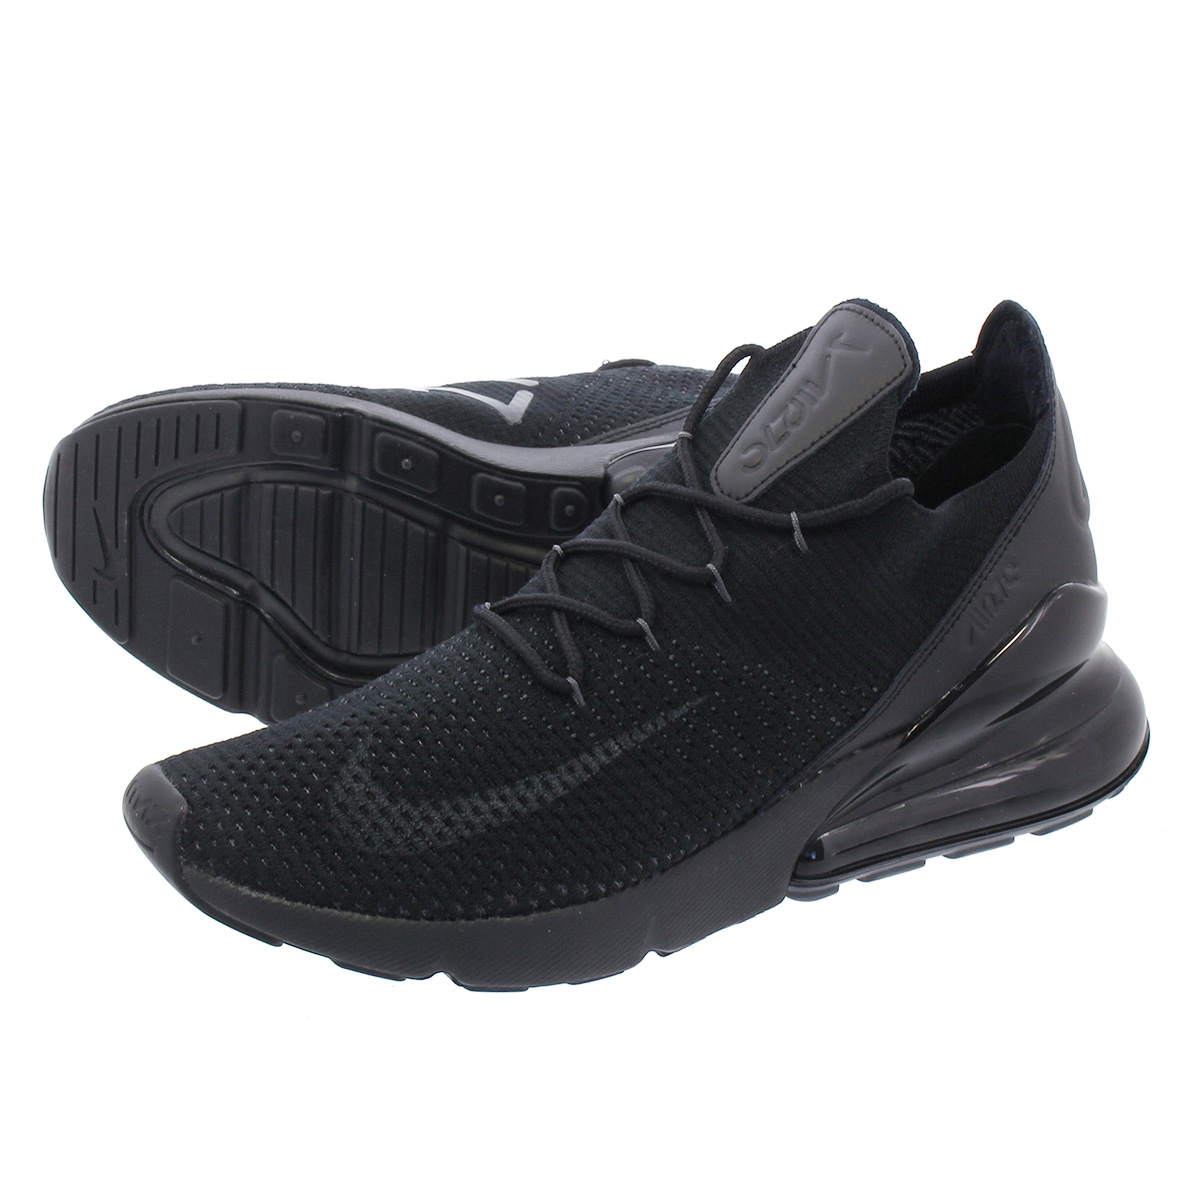 d473e4a2a49 LOWTEX PLUS  NIKE AIR MAX 270 FLYKNIT Kie Ney AMAX 270 fried food knit BLACK ANTHRACITE  ao1023-005